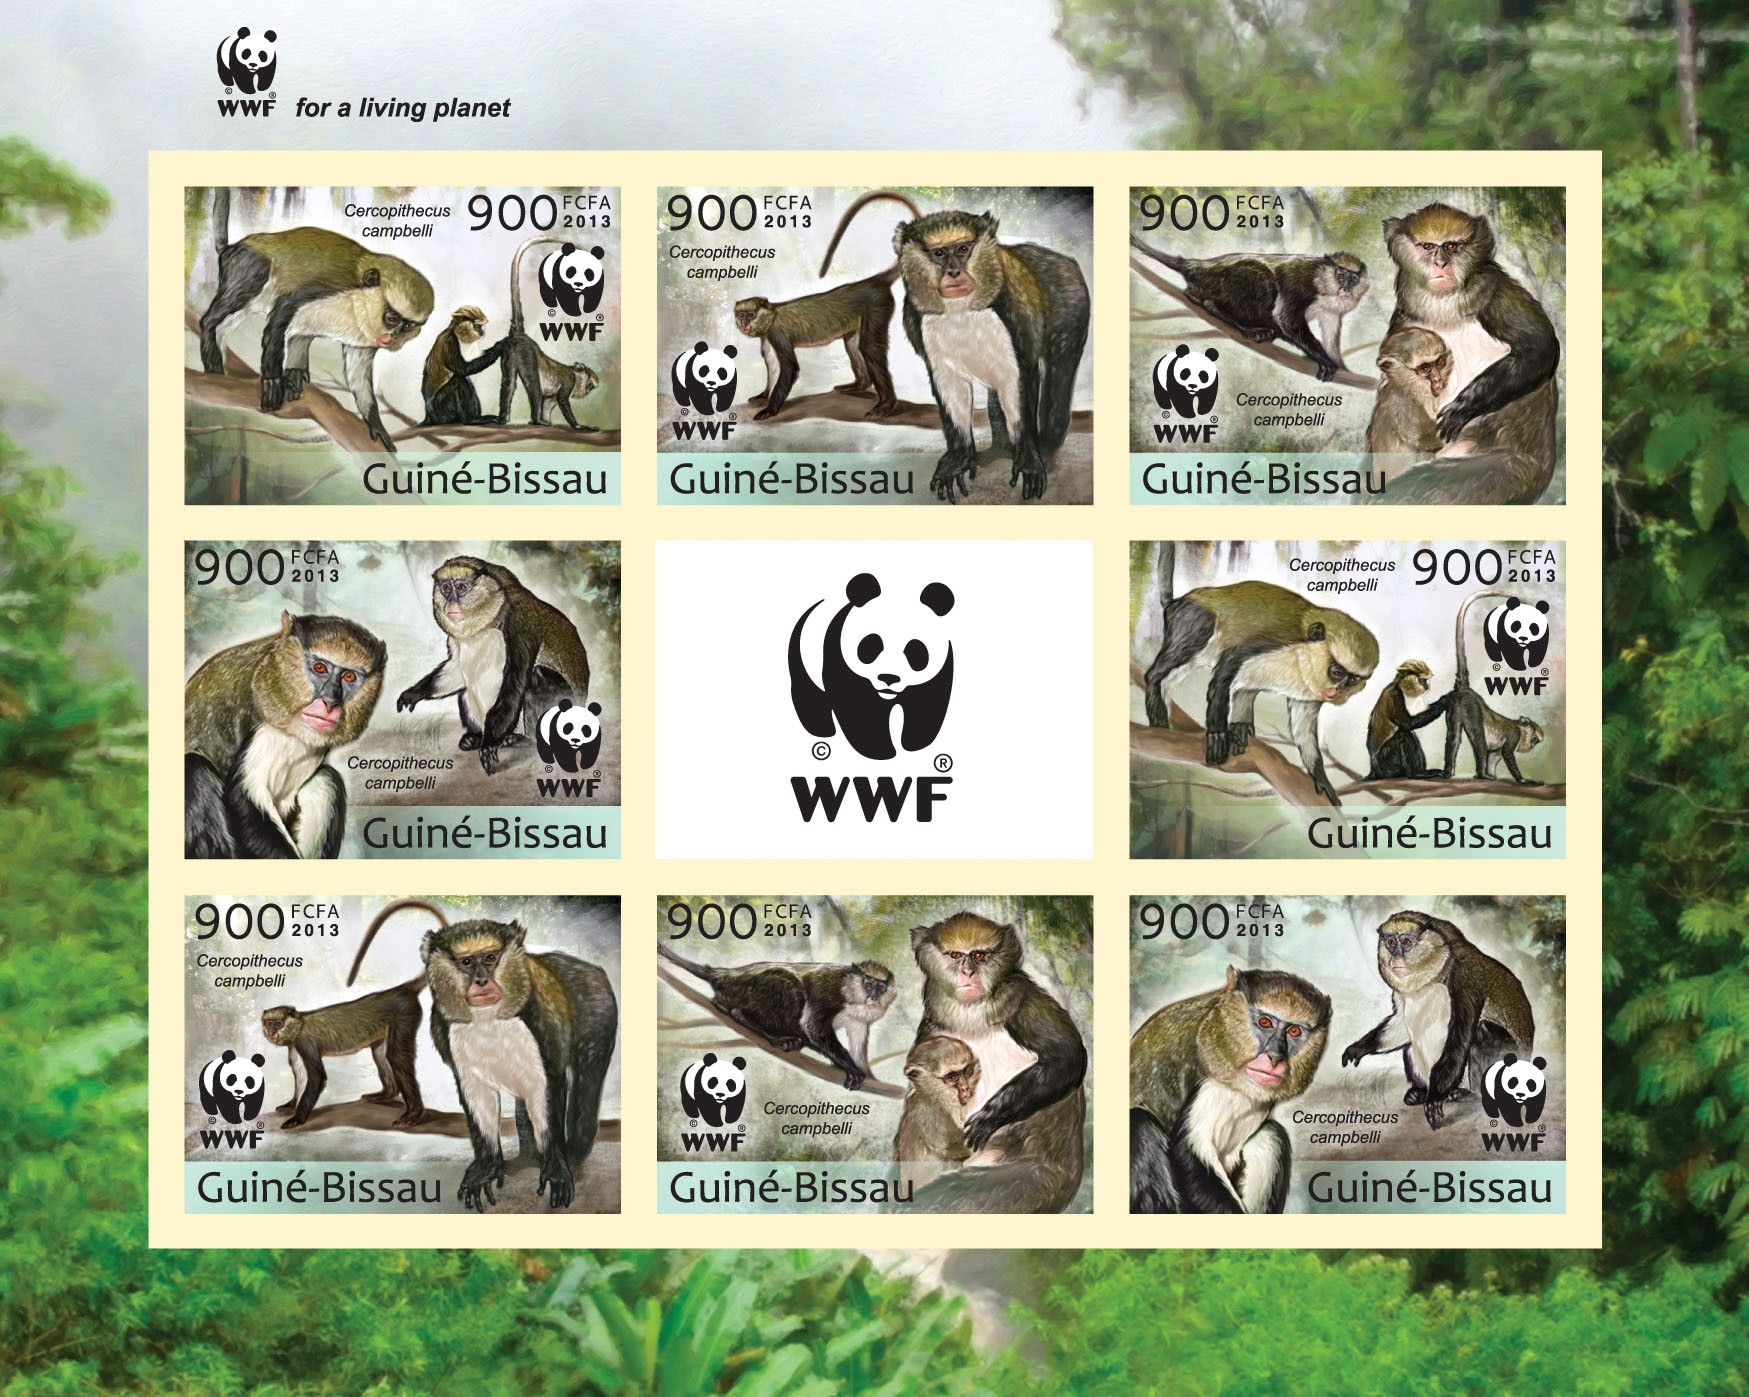 WWF - Monkeys (Cercopithecus campgelli) Sheet of 2 sets - Imperforated - Issue of Guinée-Bissau postage stamps